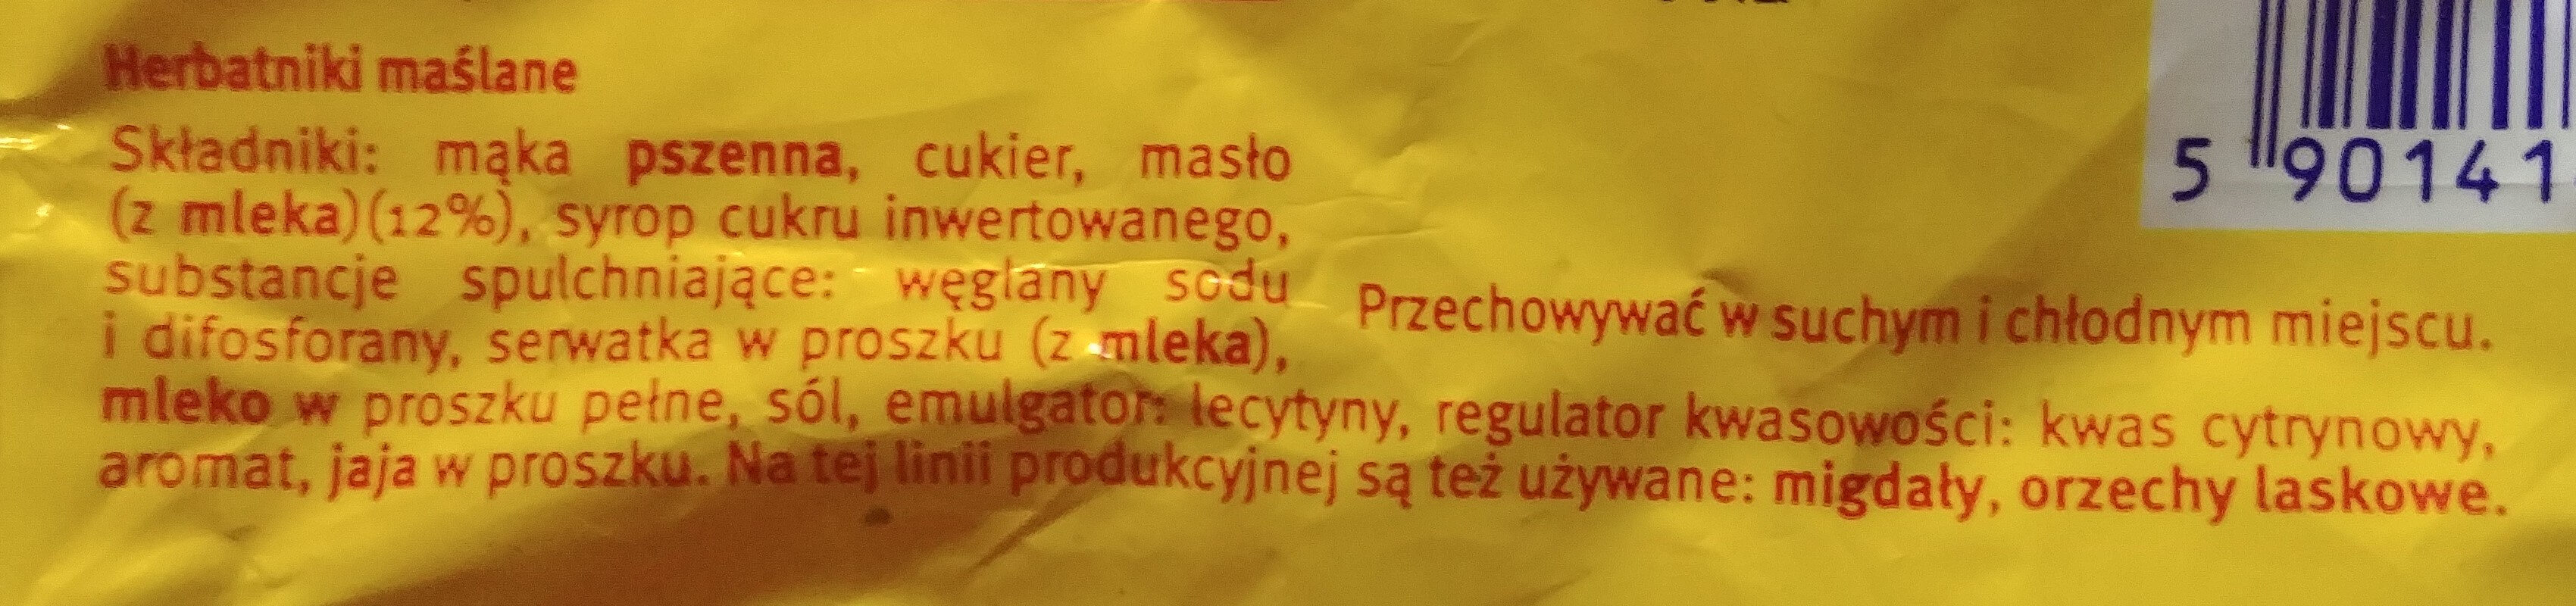 Herbatniki maślane - Ingredients